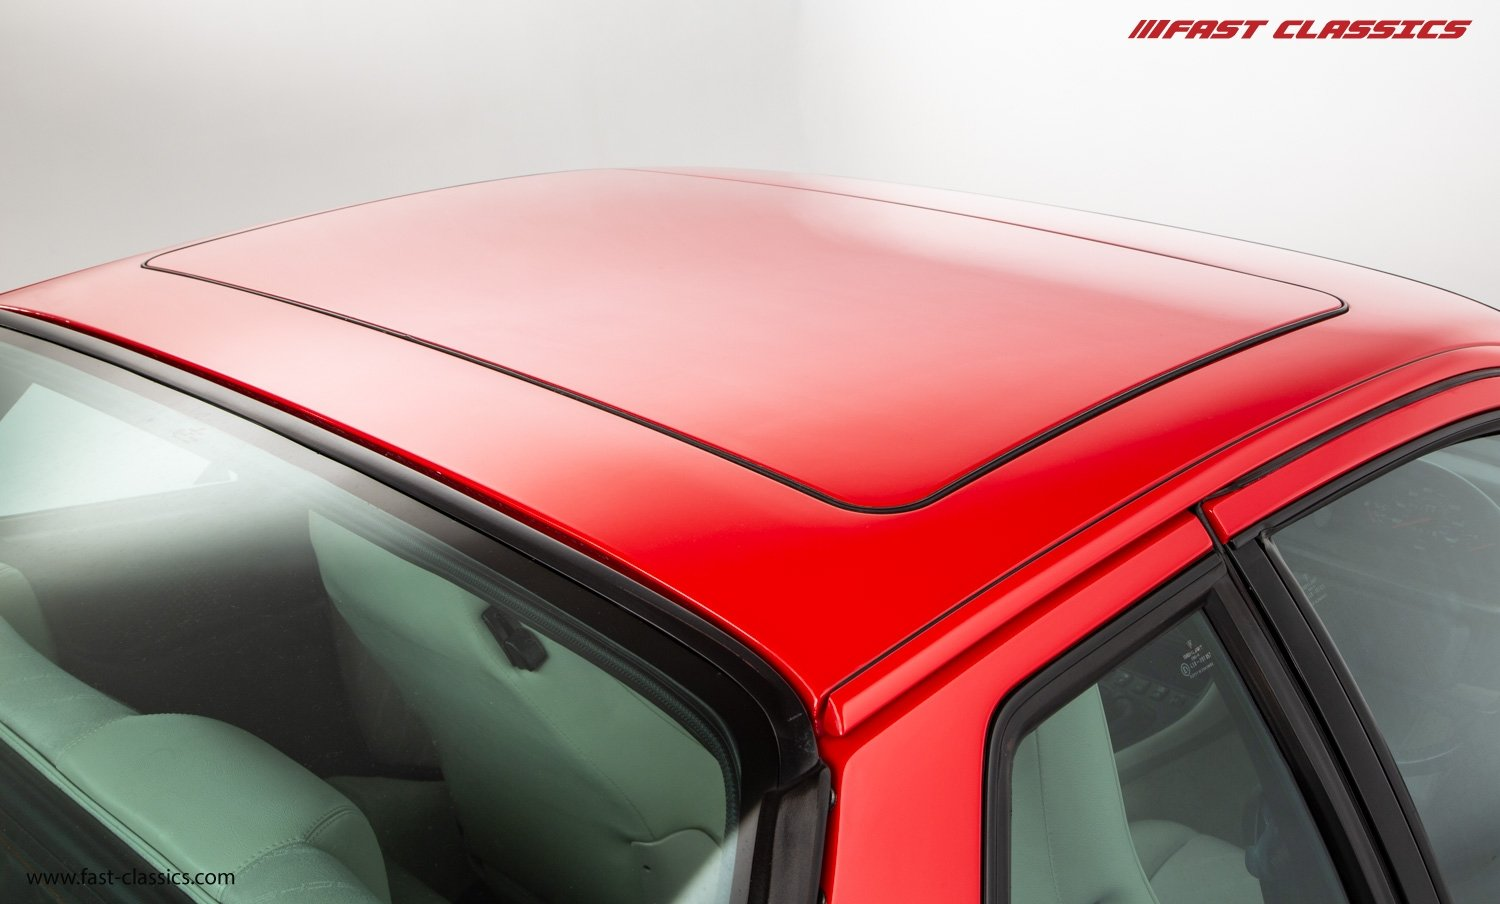 1990 PORSCHE 944 S2 // STUNNING GUARDS RED // 27K MILES // FAMILY For Sale (picture 22 of 23)